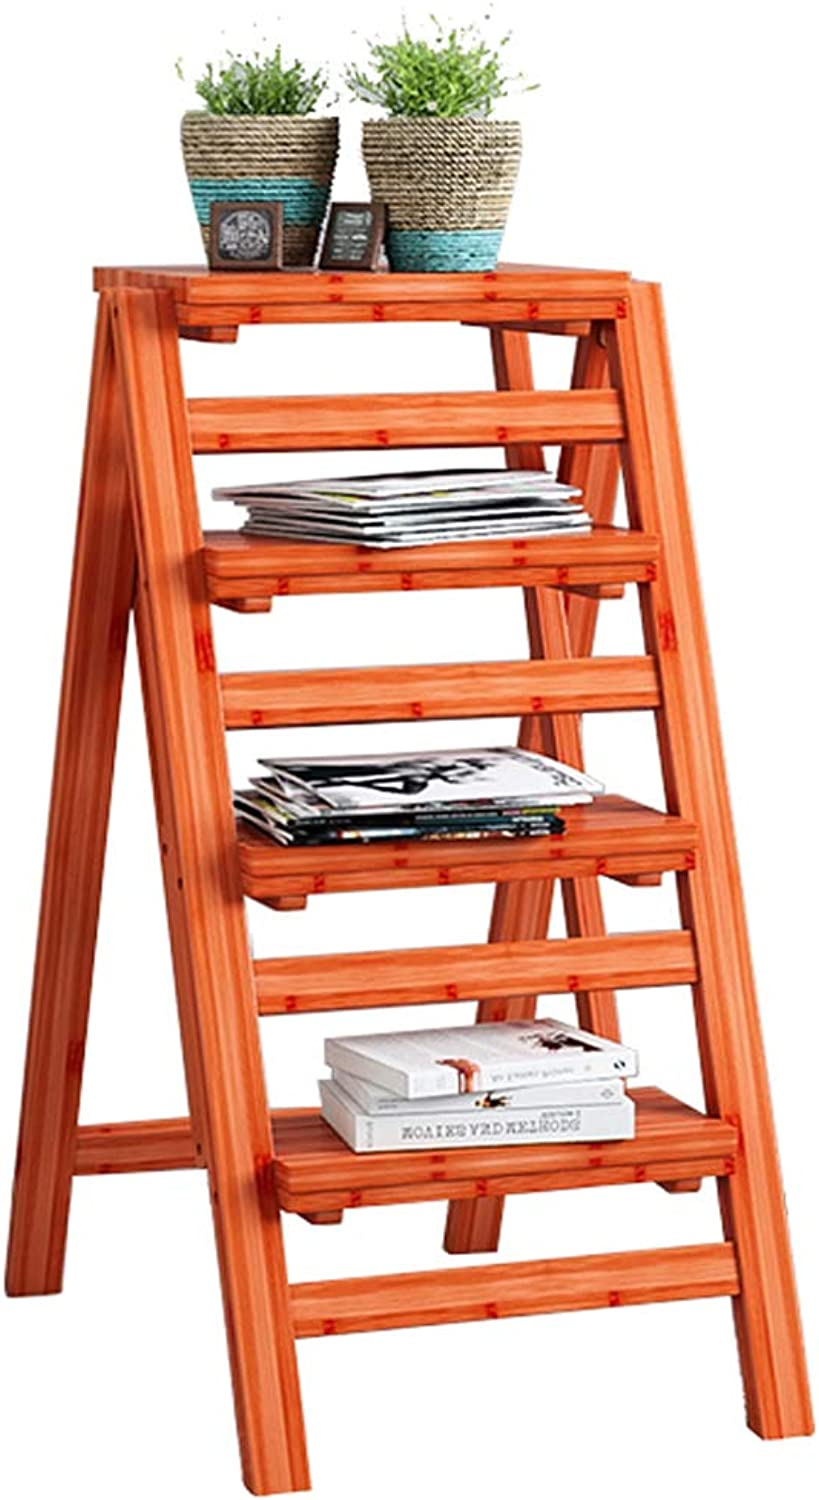 Folding Step Ladder Stool Bamboo Stepladders, 4 Steps, Solid Wood Flower Shelf Climb Ladder Stools or Garden Tool,Kitchen Office Library Stepladder